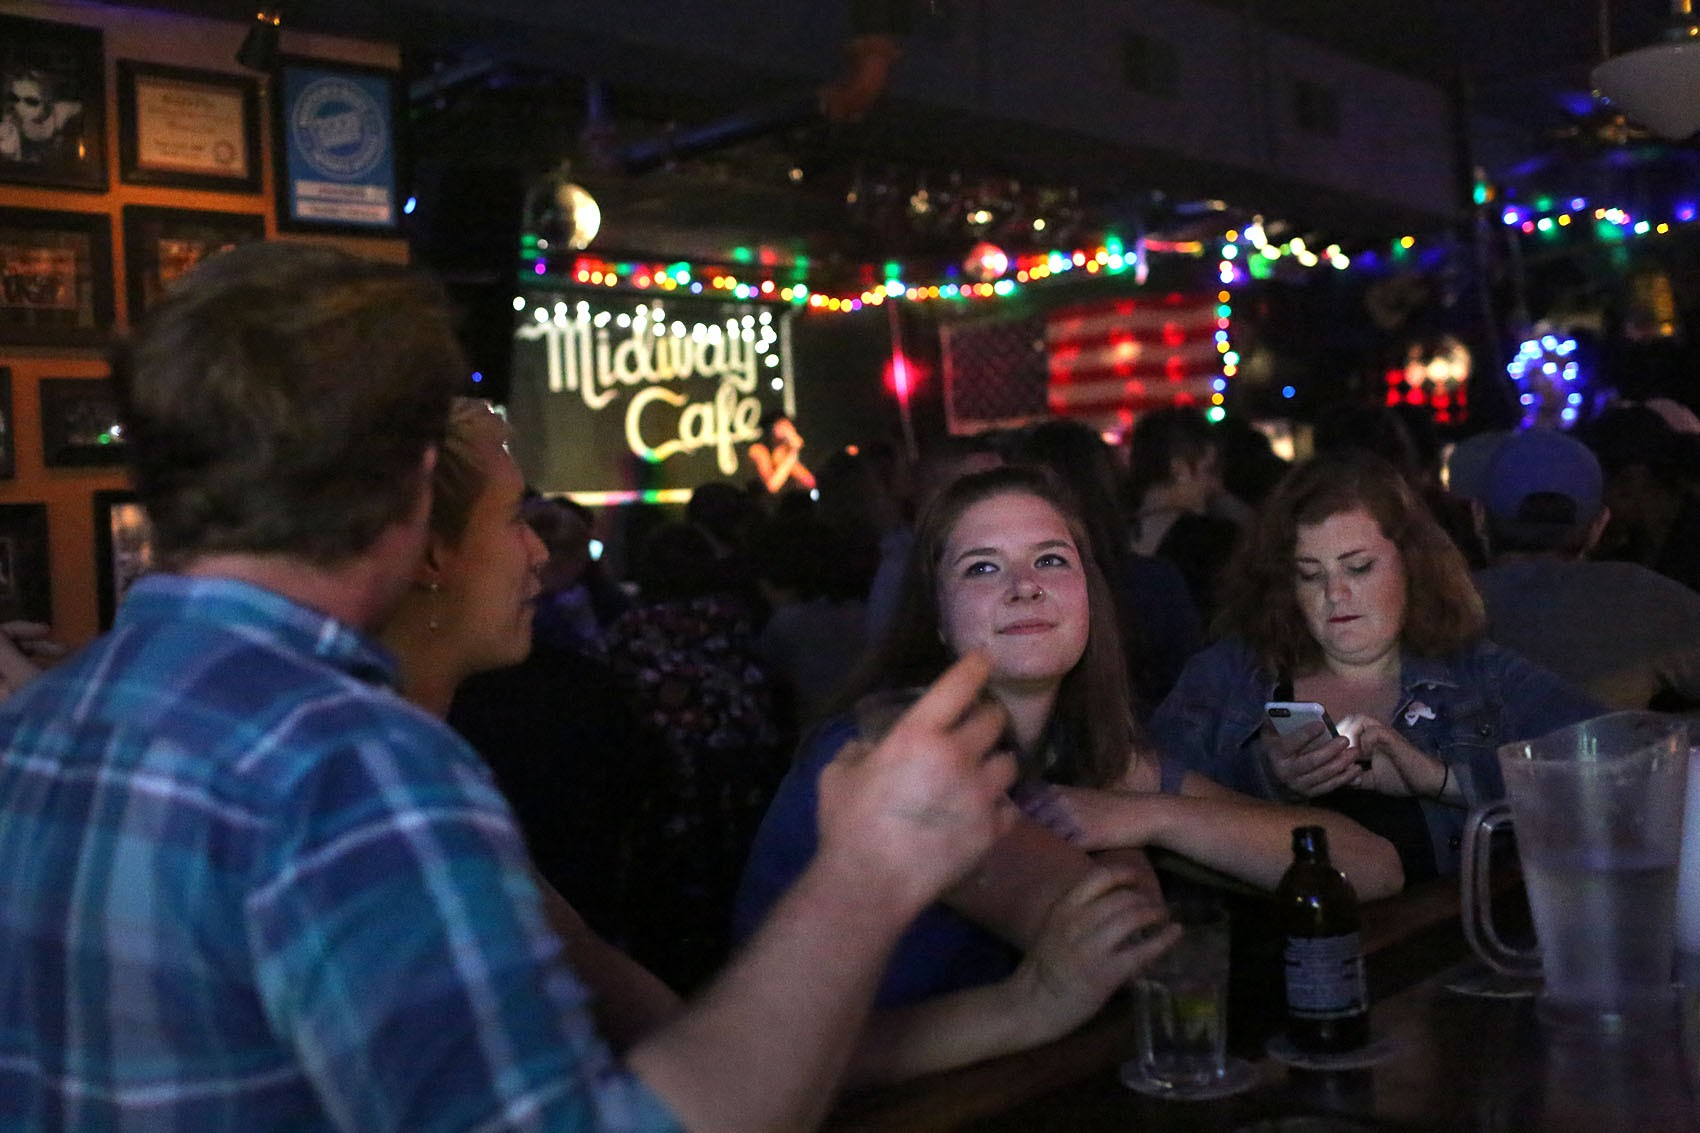 People sit at the Midway Cafe's bar. (Hadley Green for WBUR)